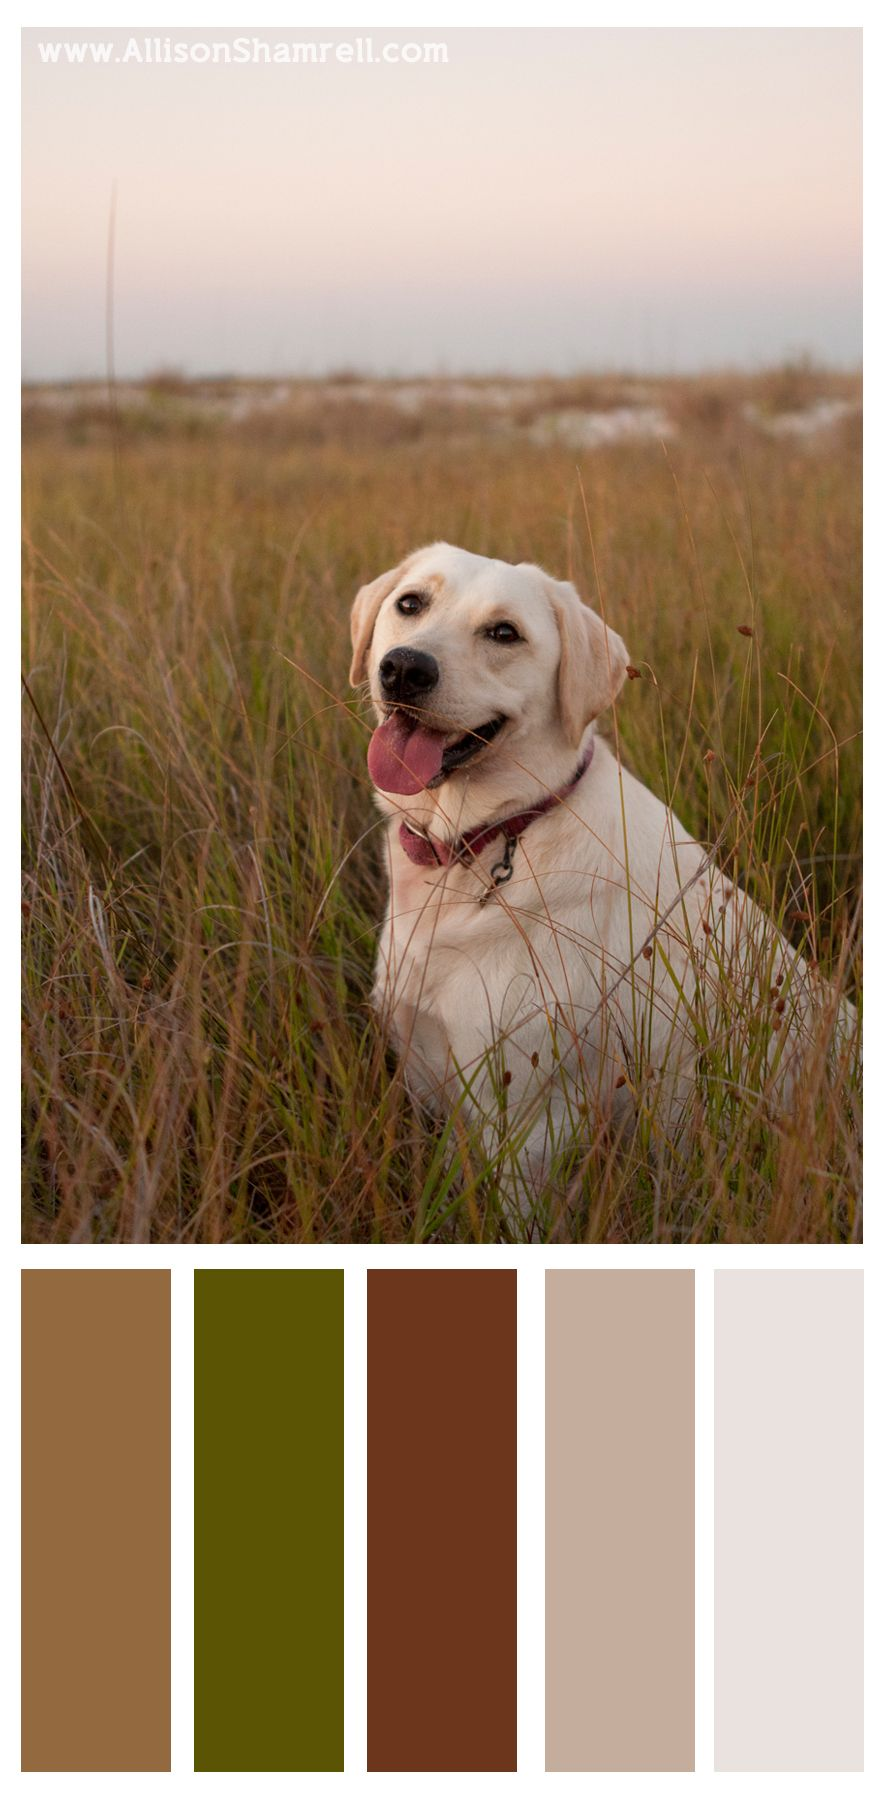 San Diego S Best Pet Photography By Allison Shamrell San Diego S Best Pet Photography Yellow Labrador Golden Retriever Colors Labrador